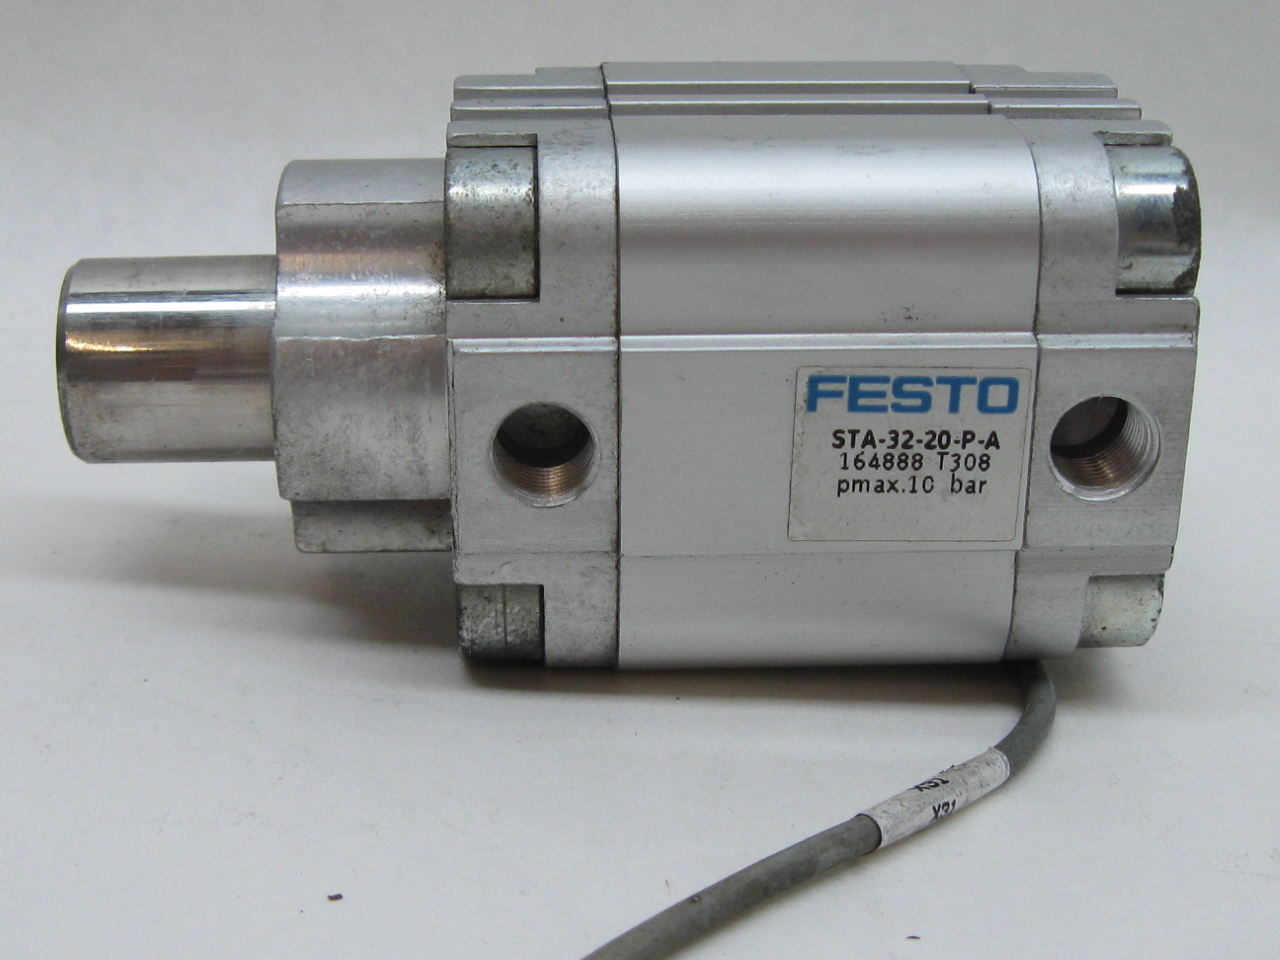 Festo Sta 32 20 P A Pneumatic Stopper Cylinder 32mm Bore